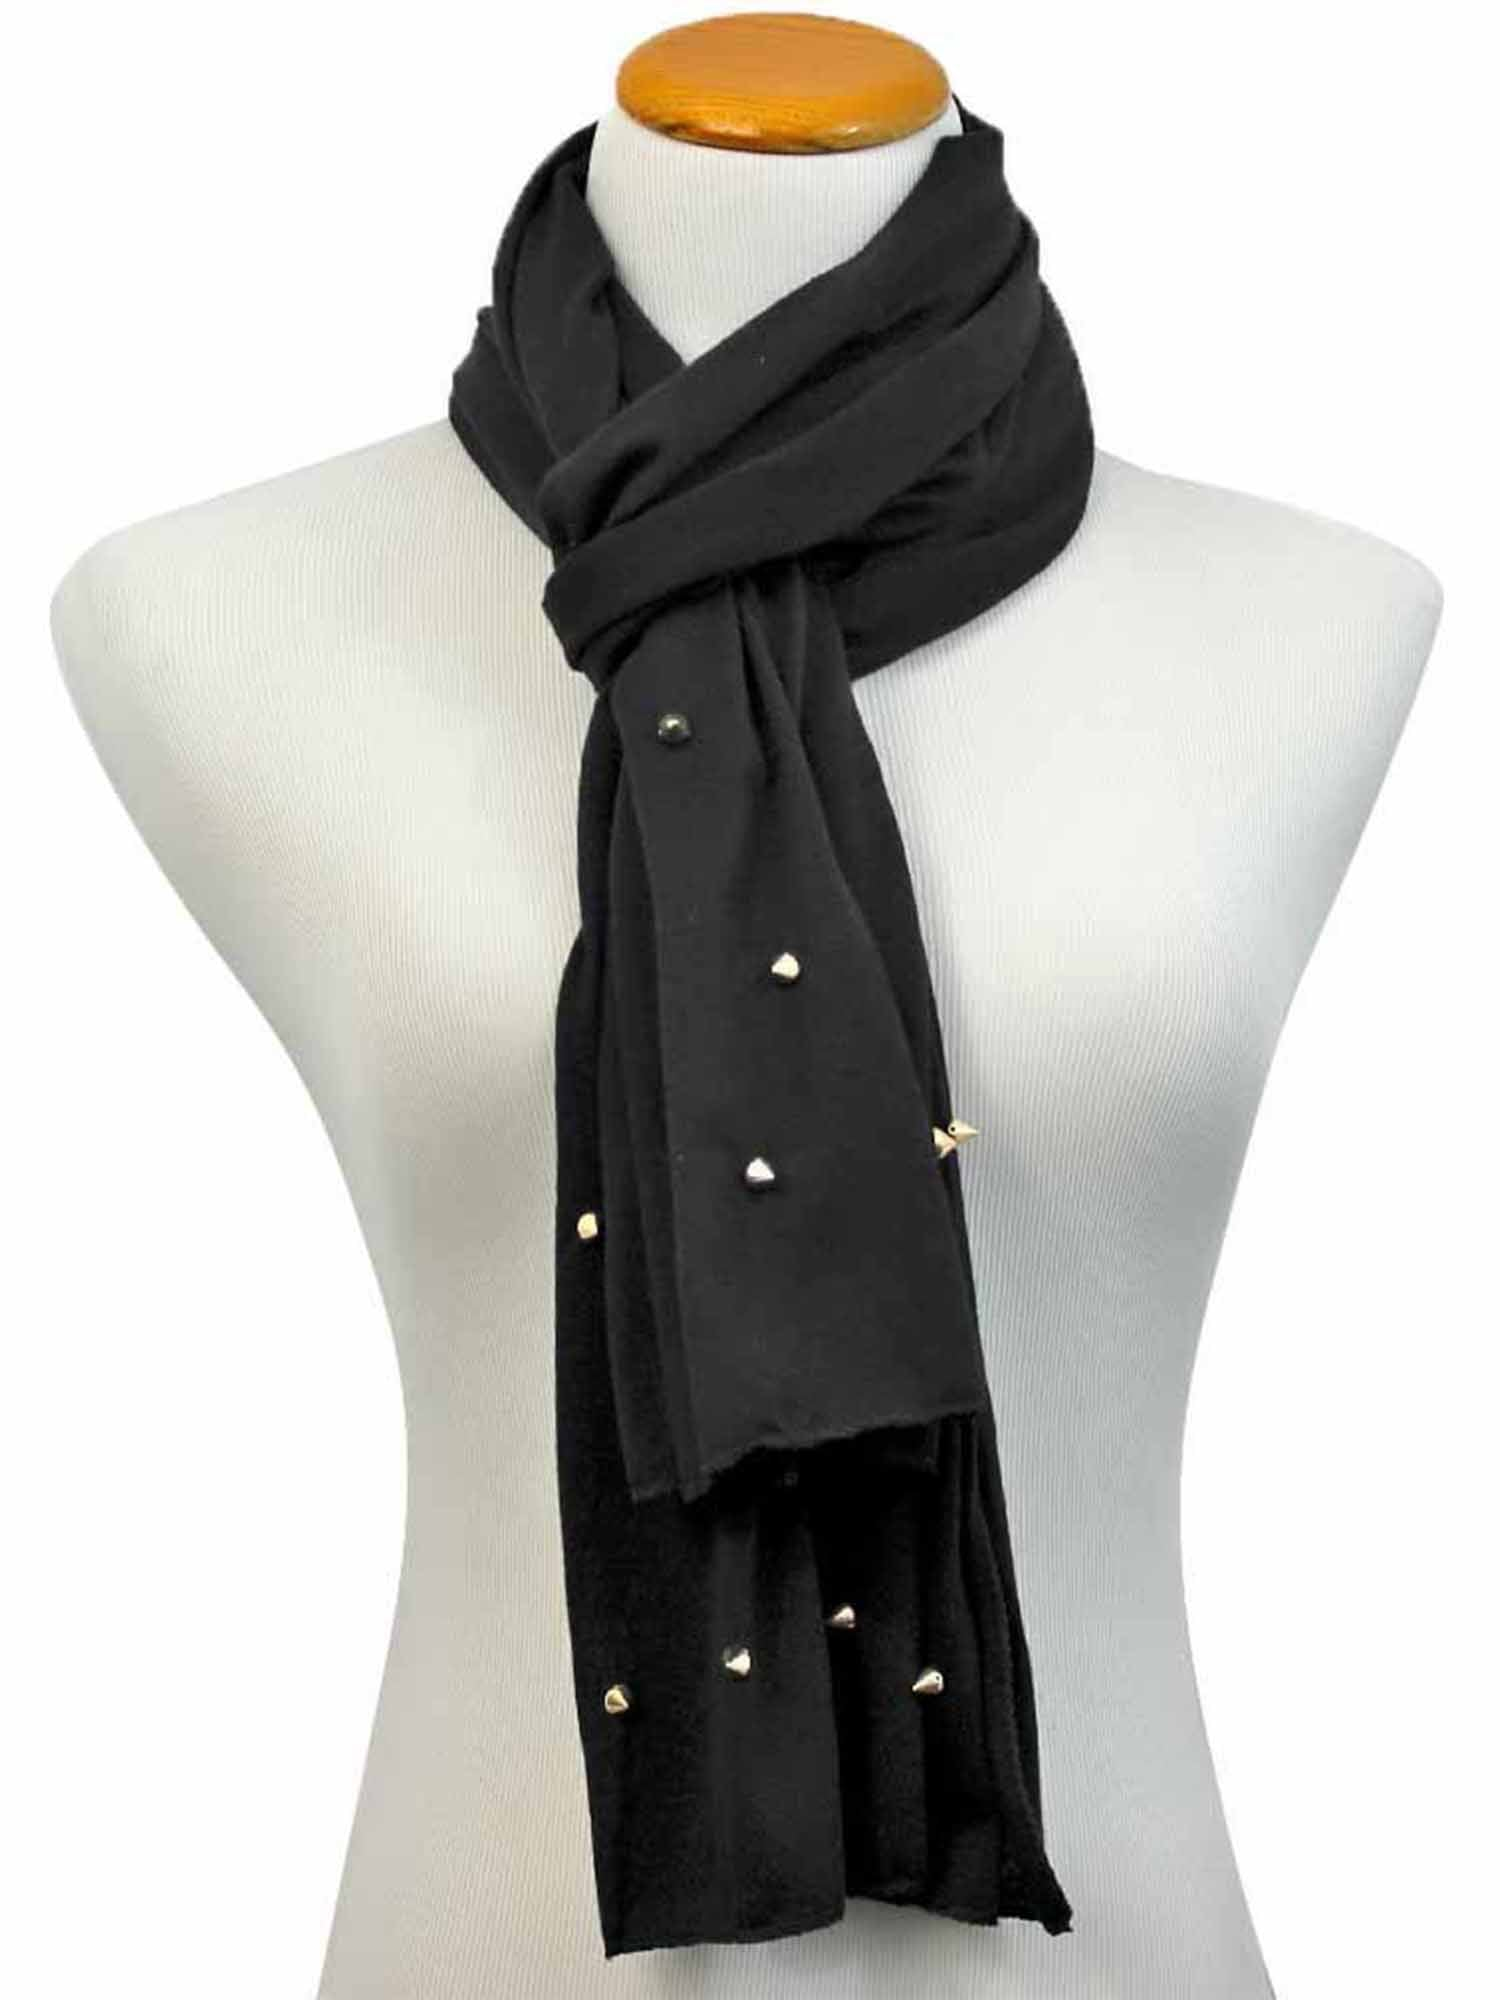 Jersey Knit Scarf Wrap With Spikes